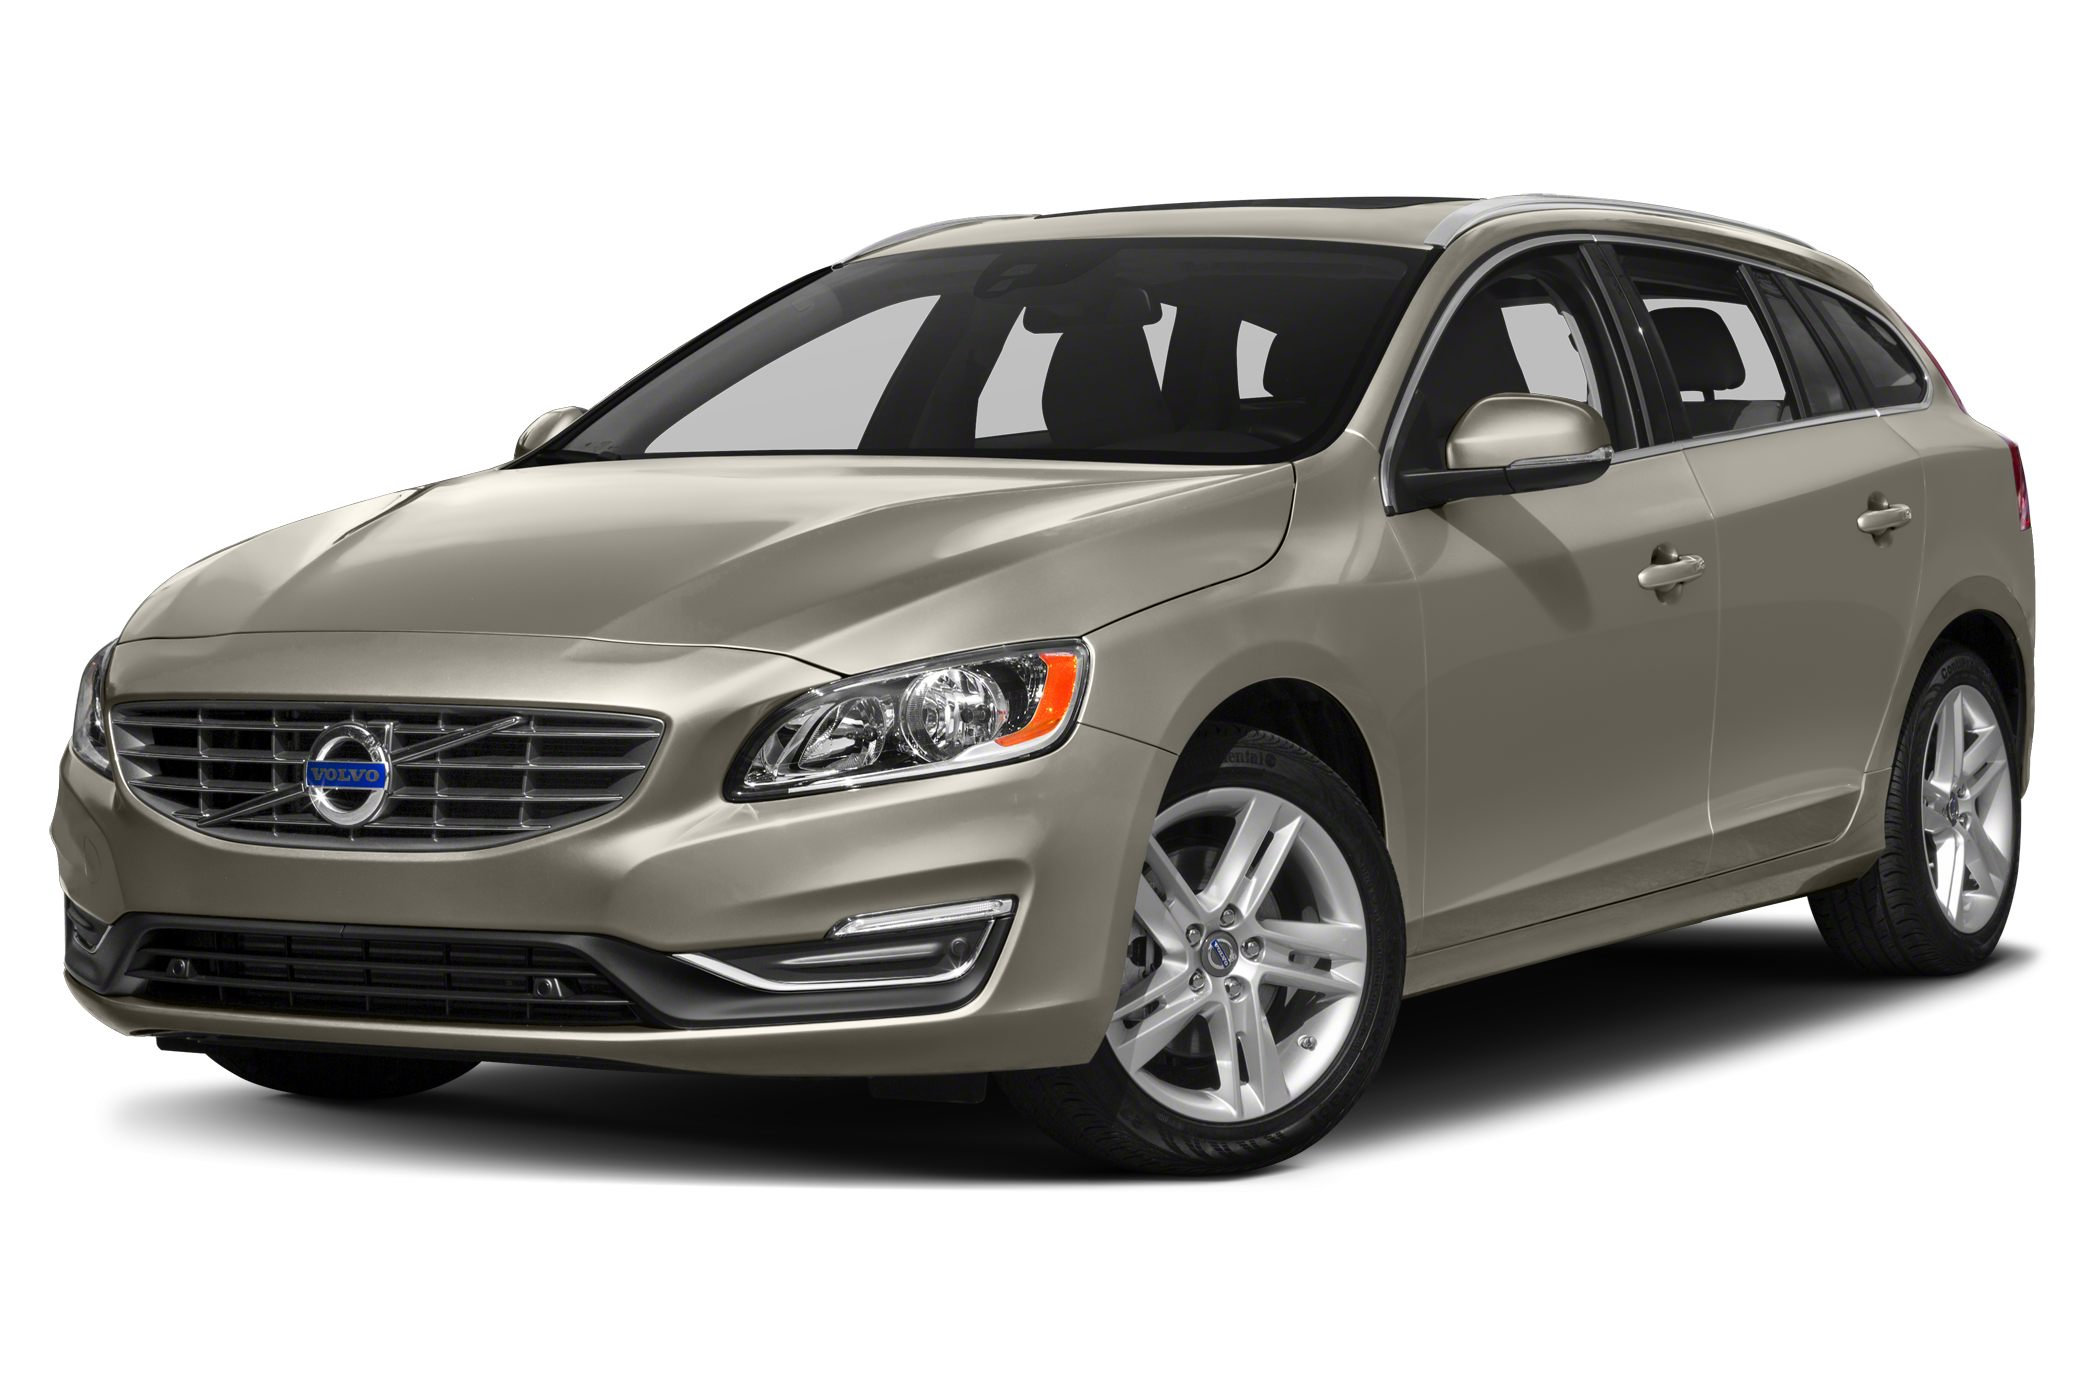 2017 Volvo V60 T5 4dr All-wheel Drive Wagon